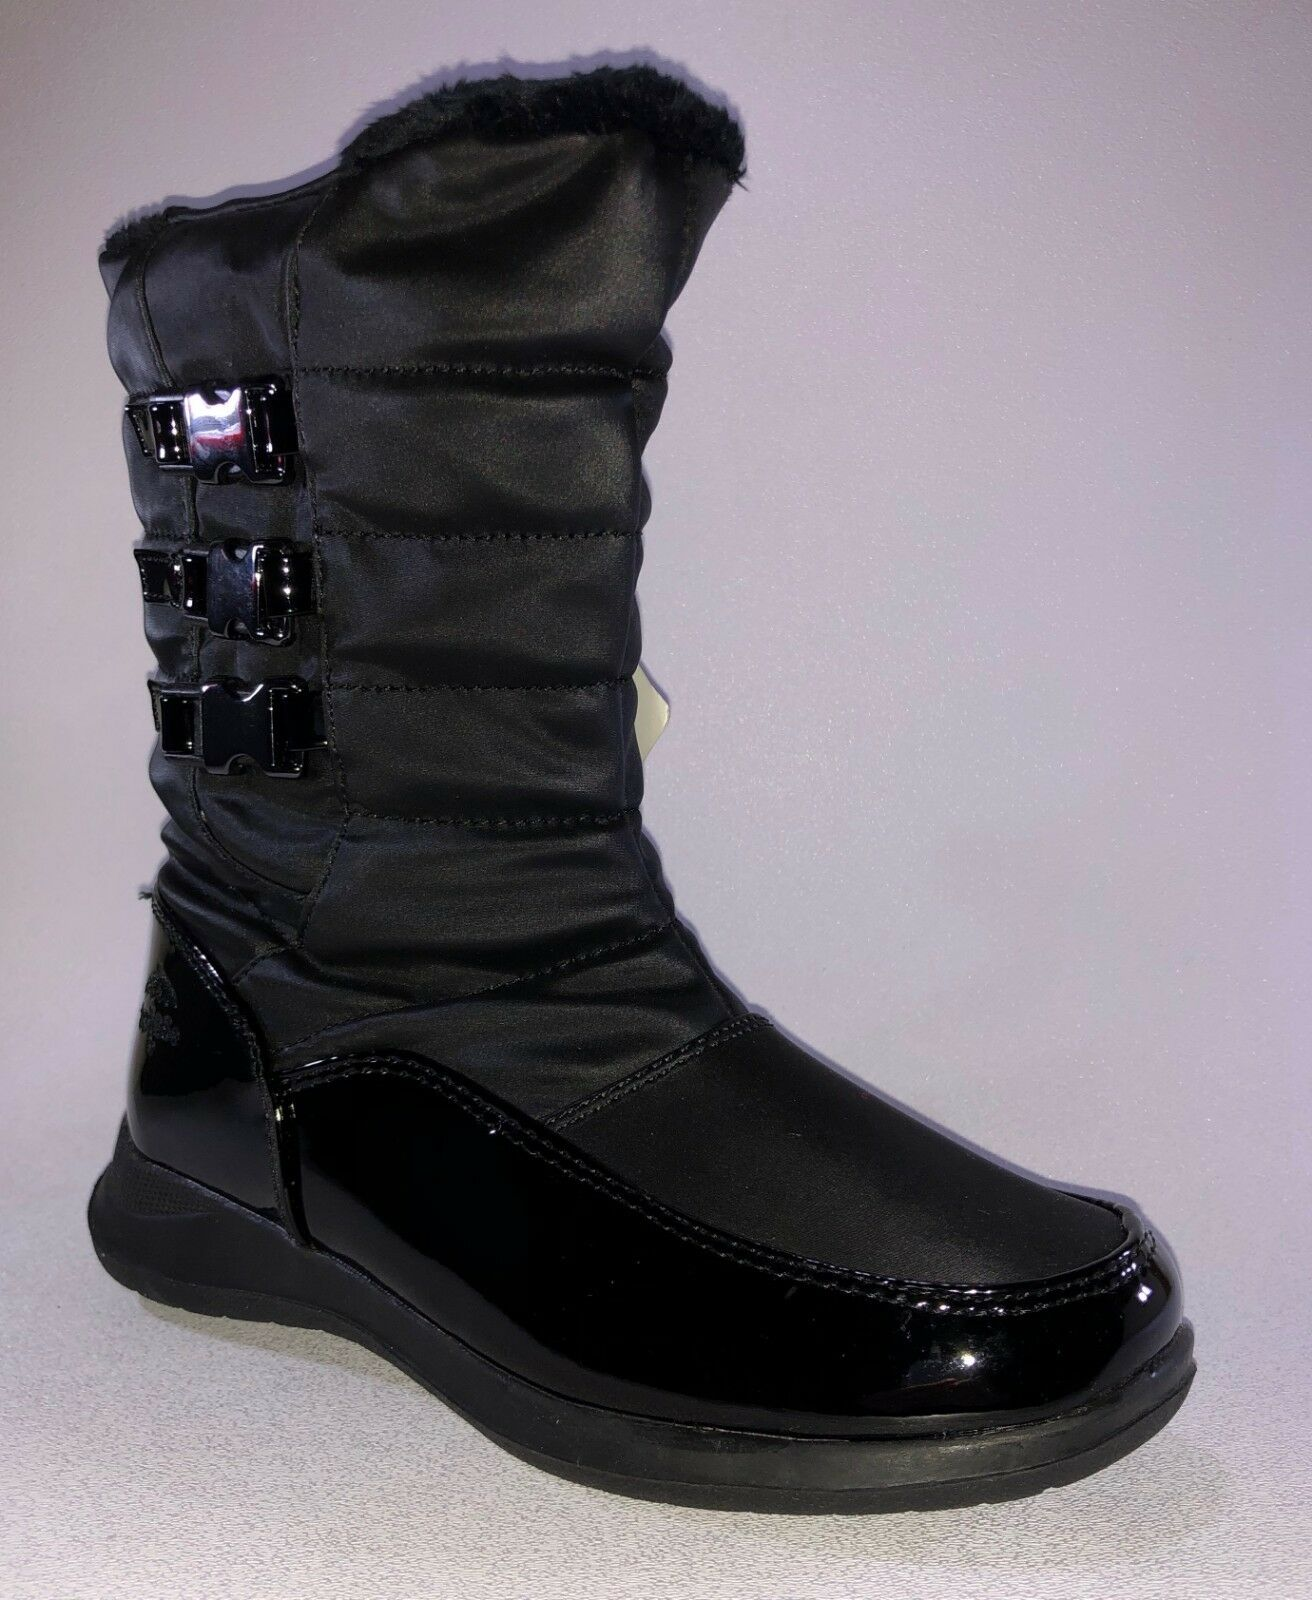 Totes BONNIE Womens Black WIDE WIDTH Waterproof Nylon Boots